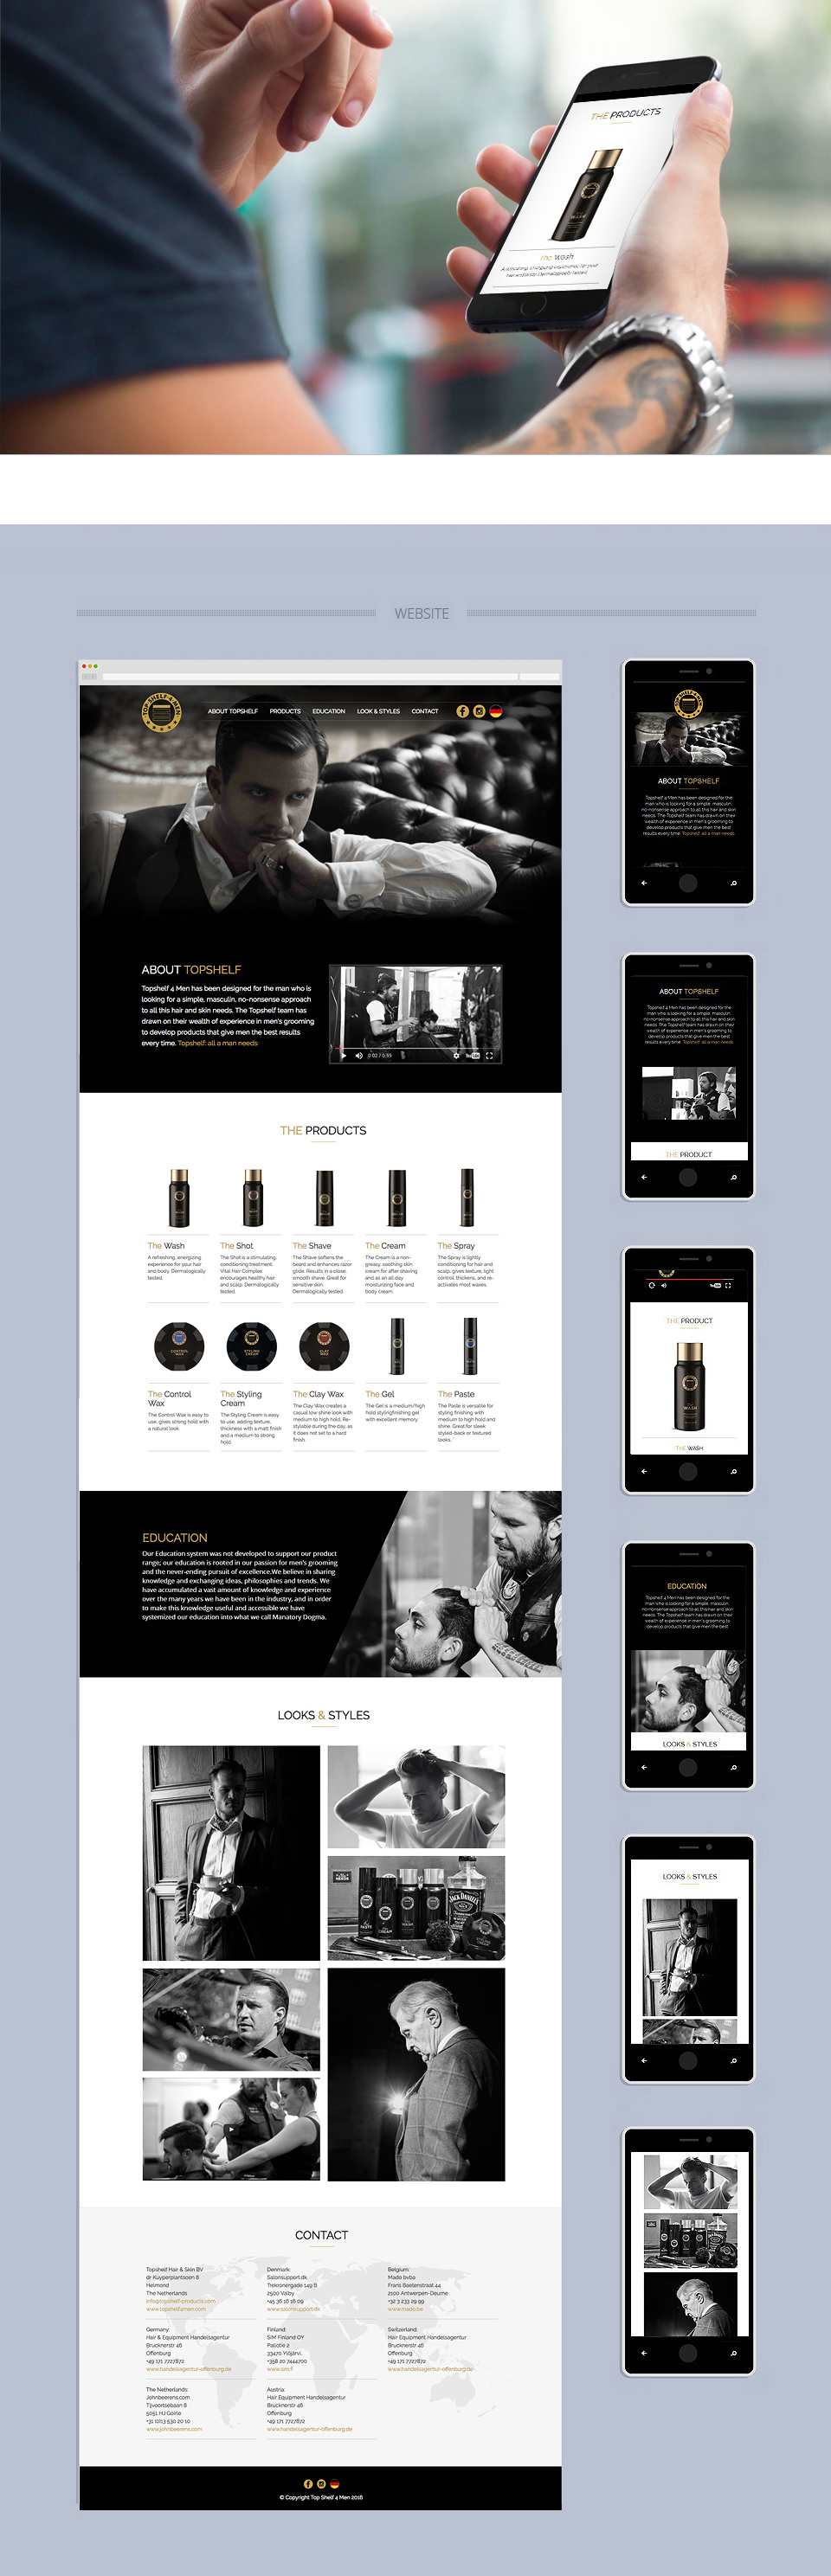 Webdesign - Top Shelf 4 Men